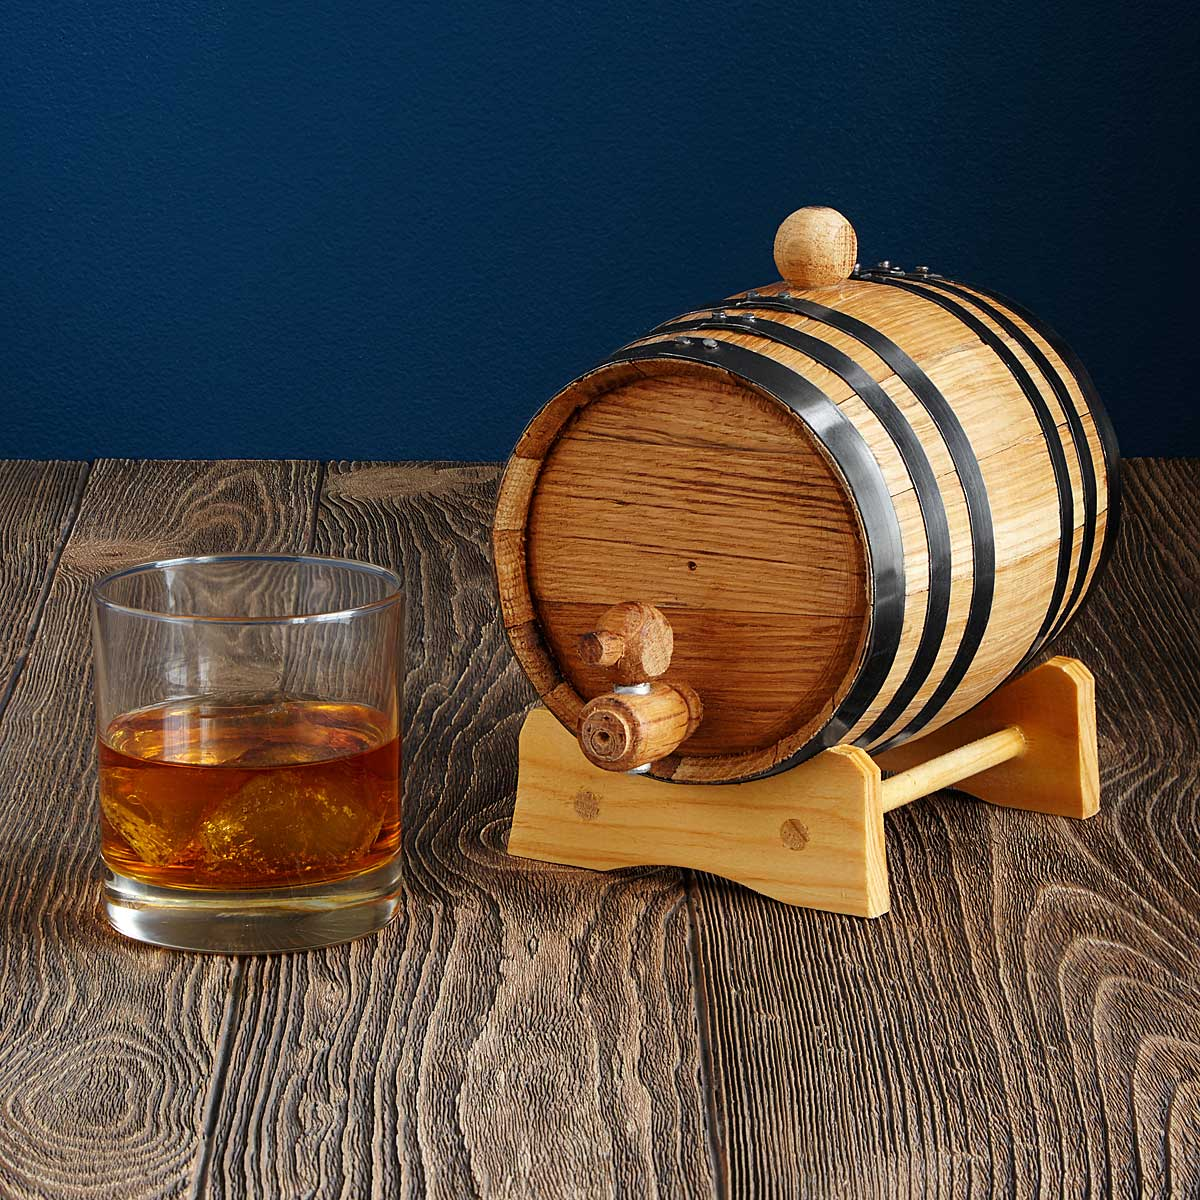 How to make whiskey and whiskey recipes